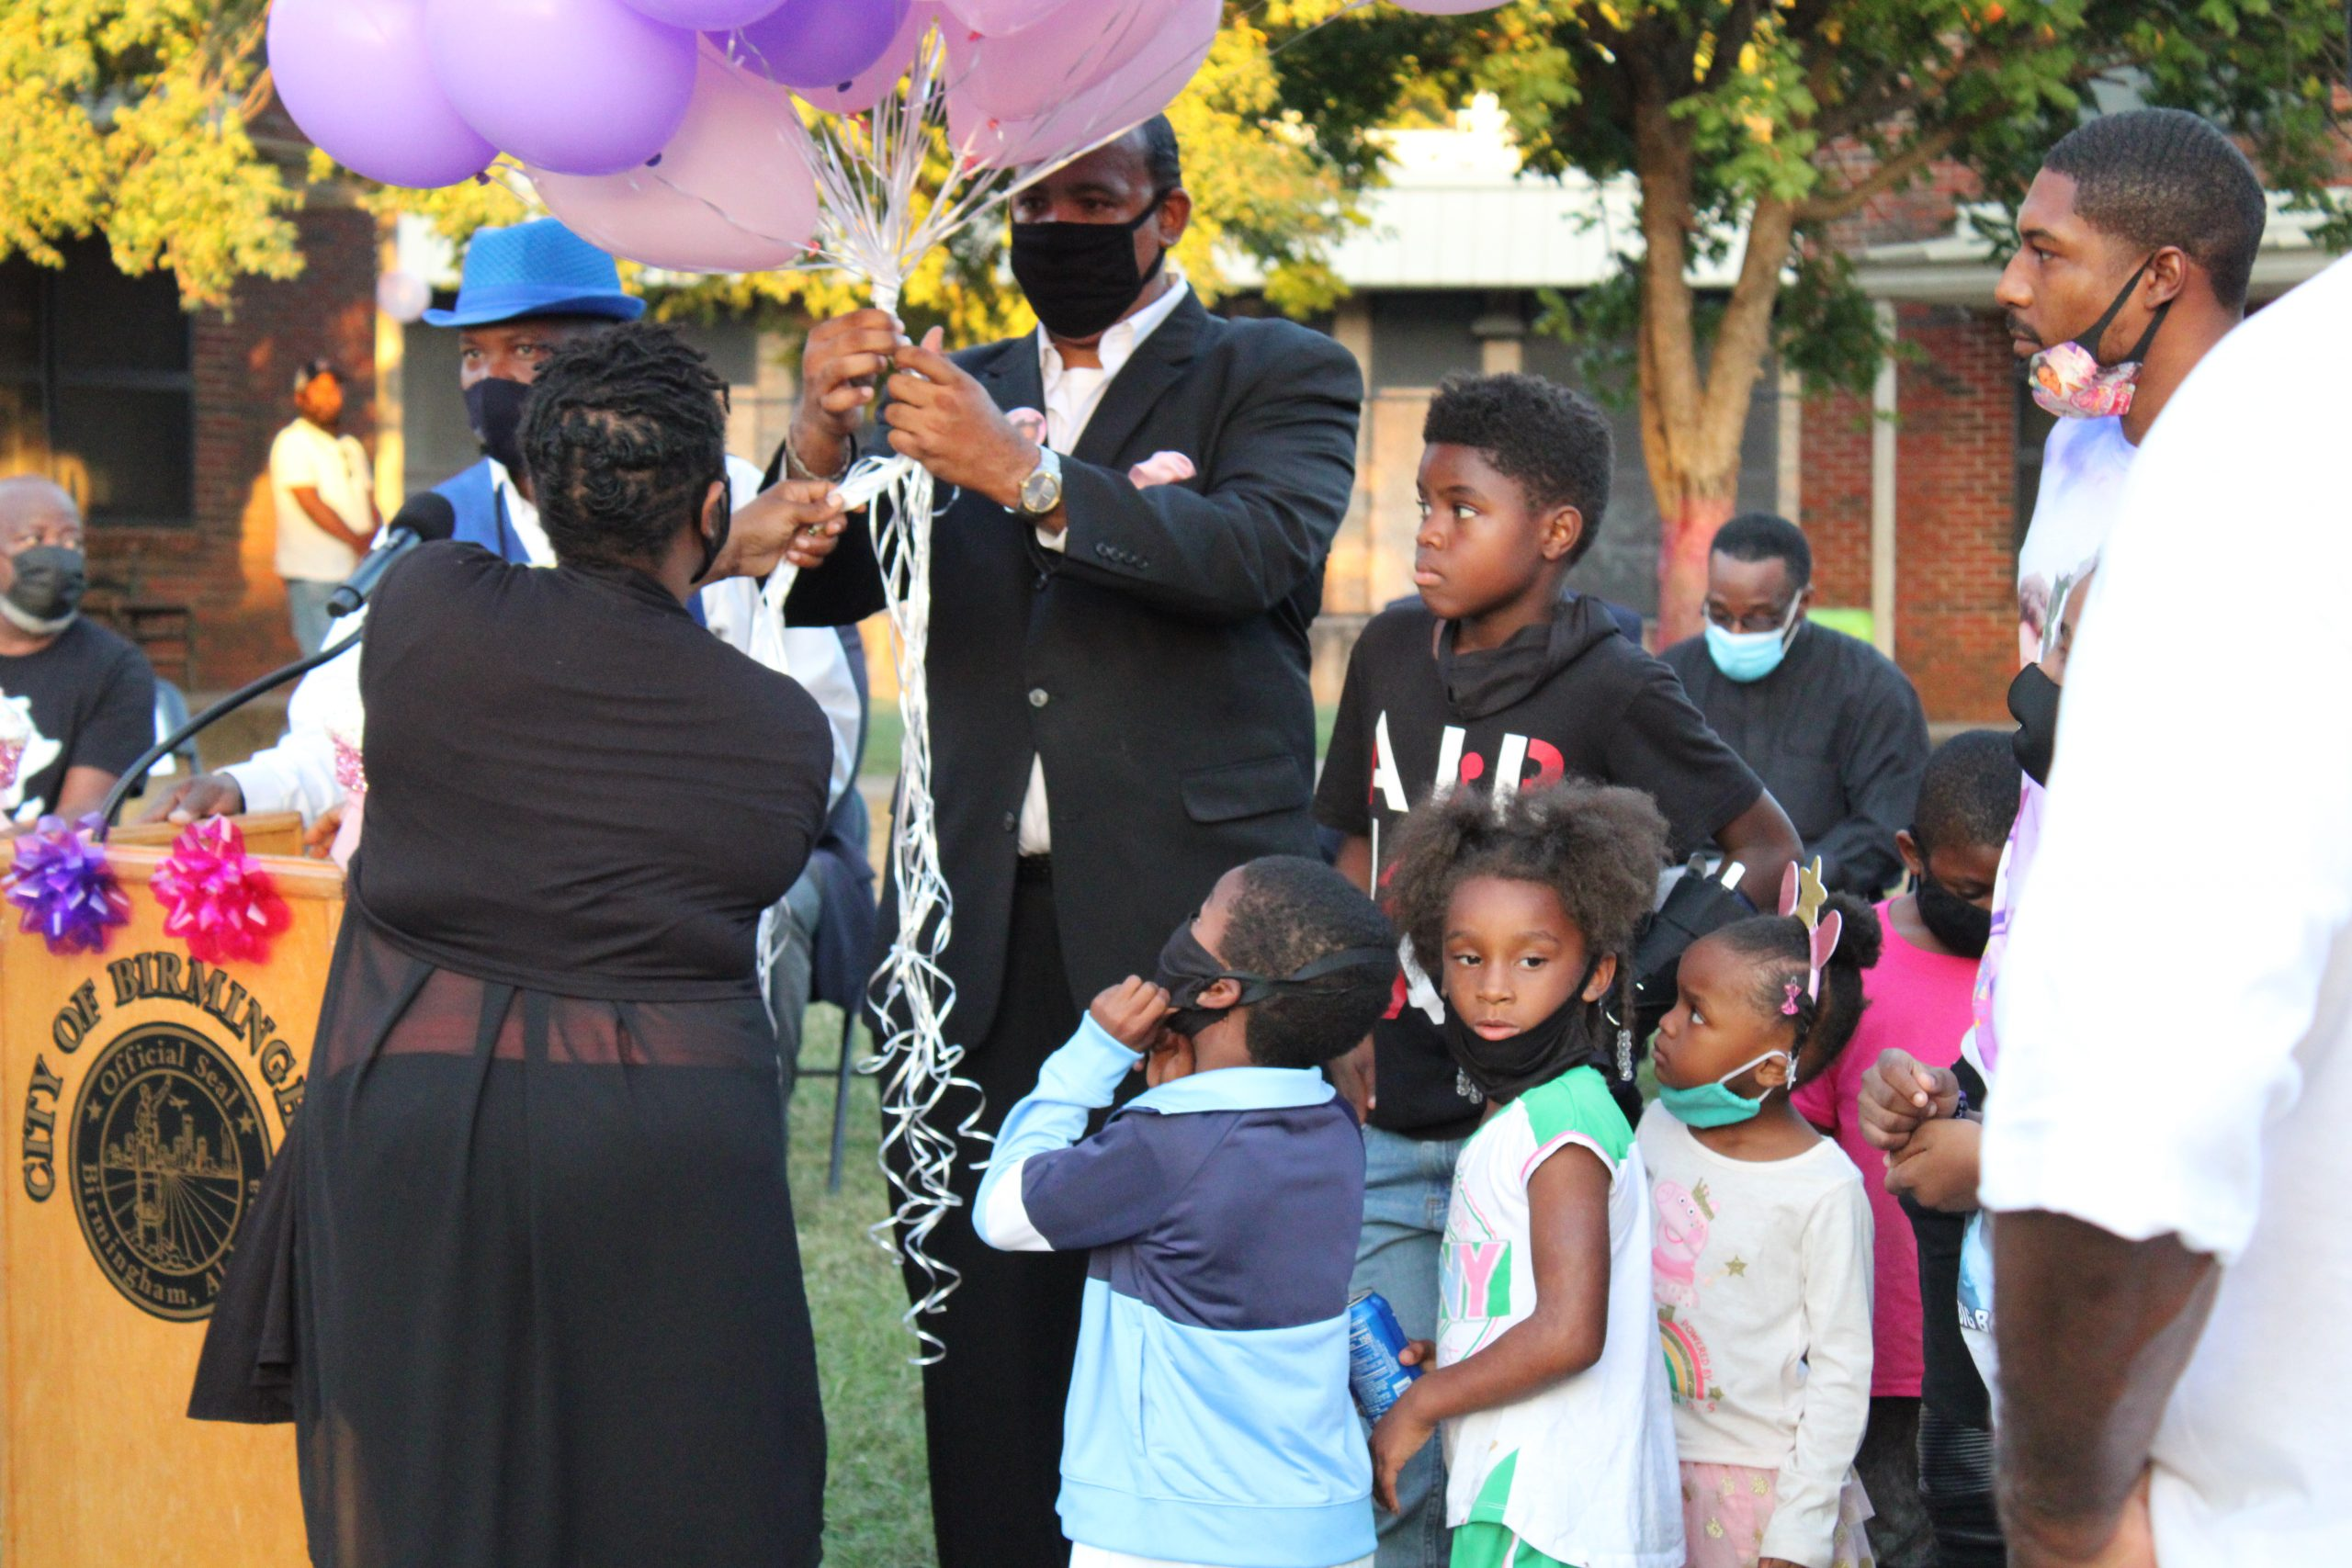 """Event organizers hand out balloons during ceremony to remember 3-year-old Kamille """"Cupcake"""" McKinney in the Avondale community. (Sydney Melson, The Birmingham Times)"""